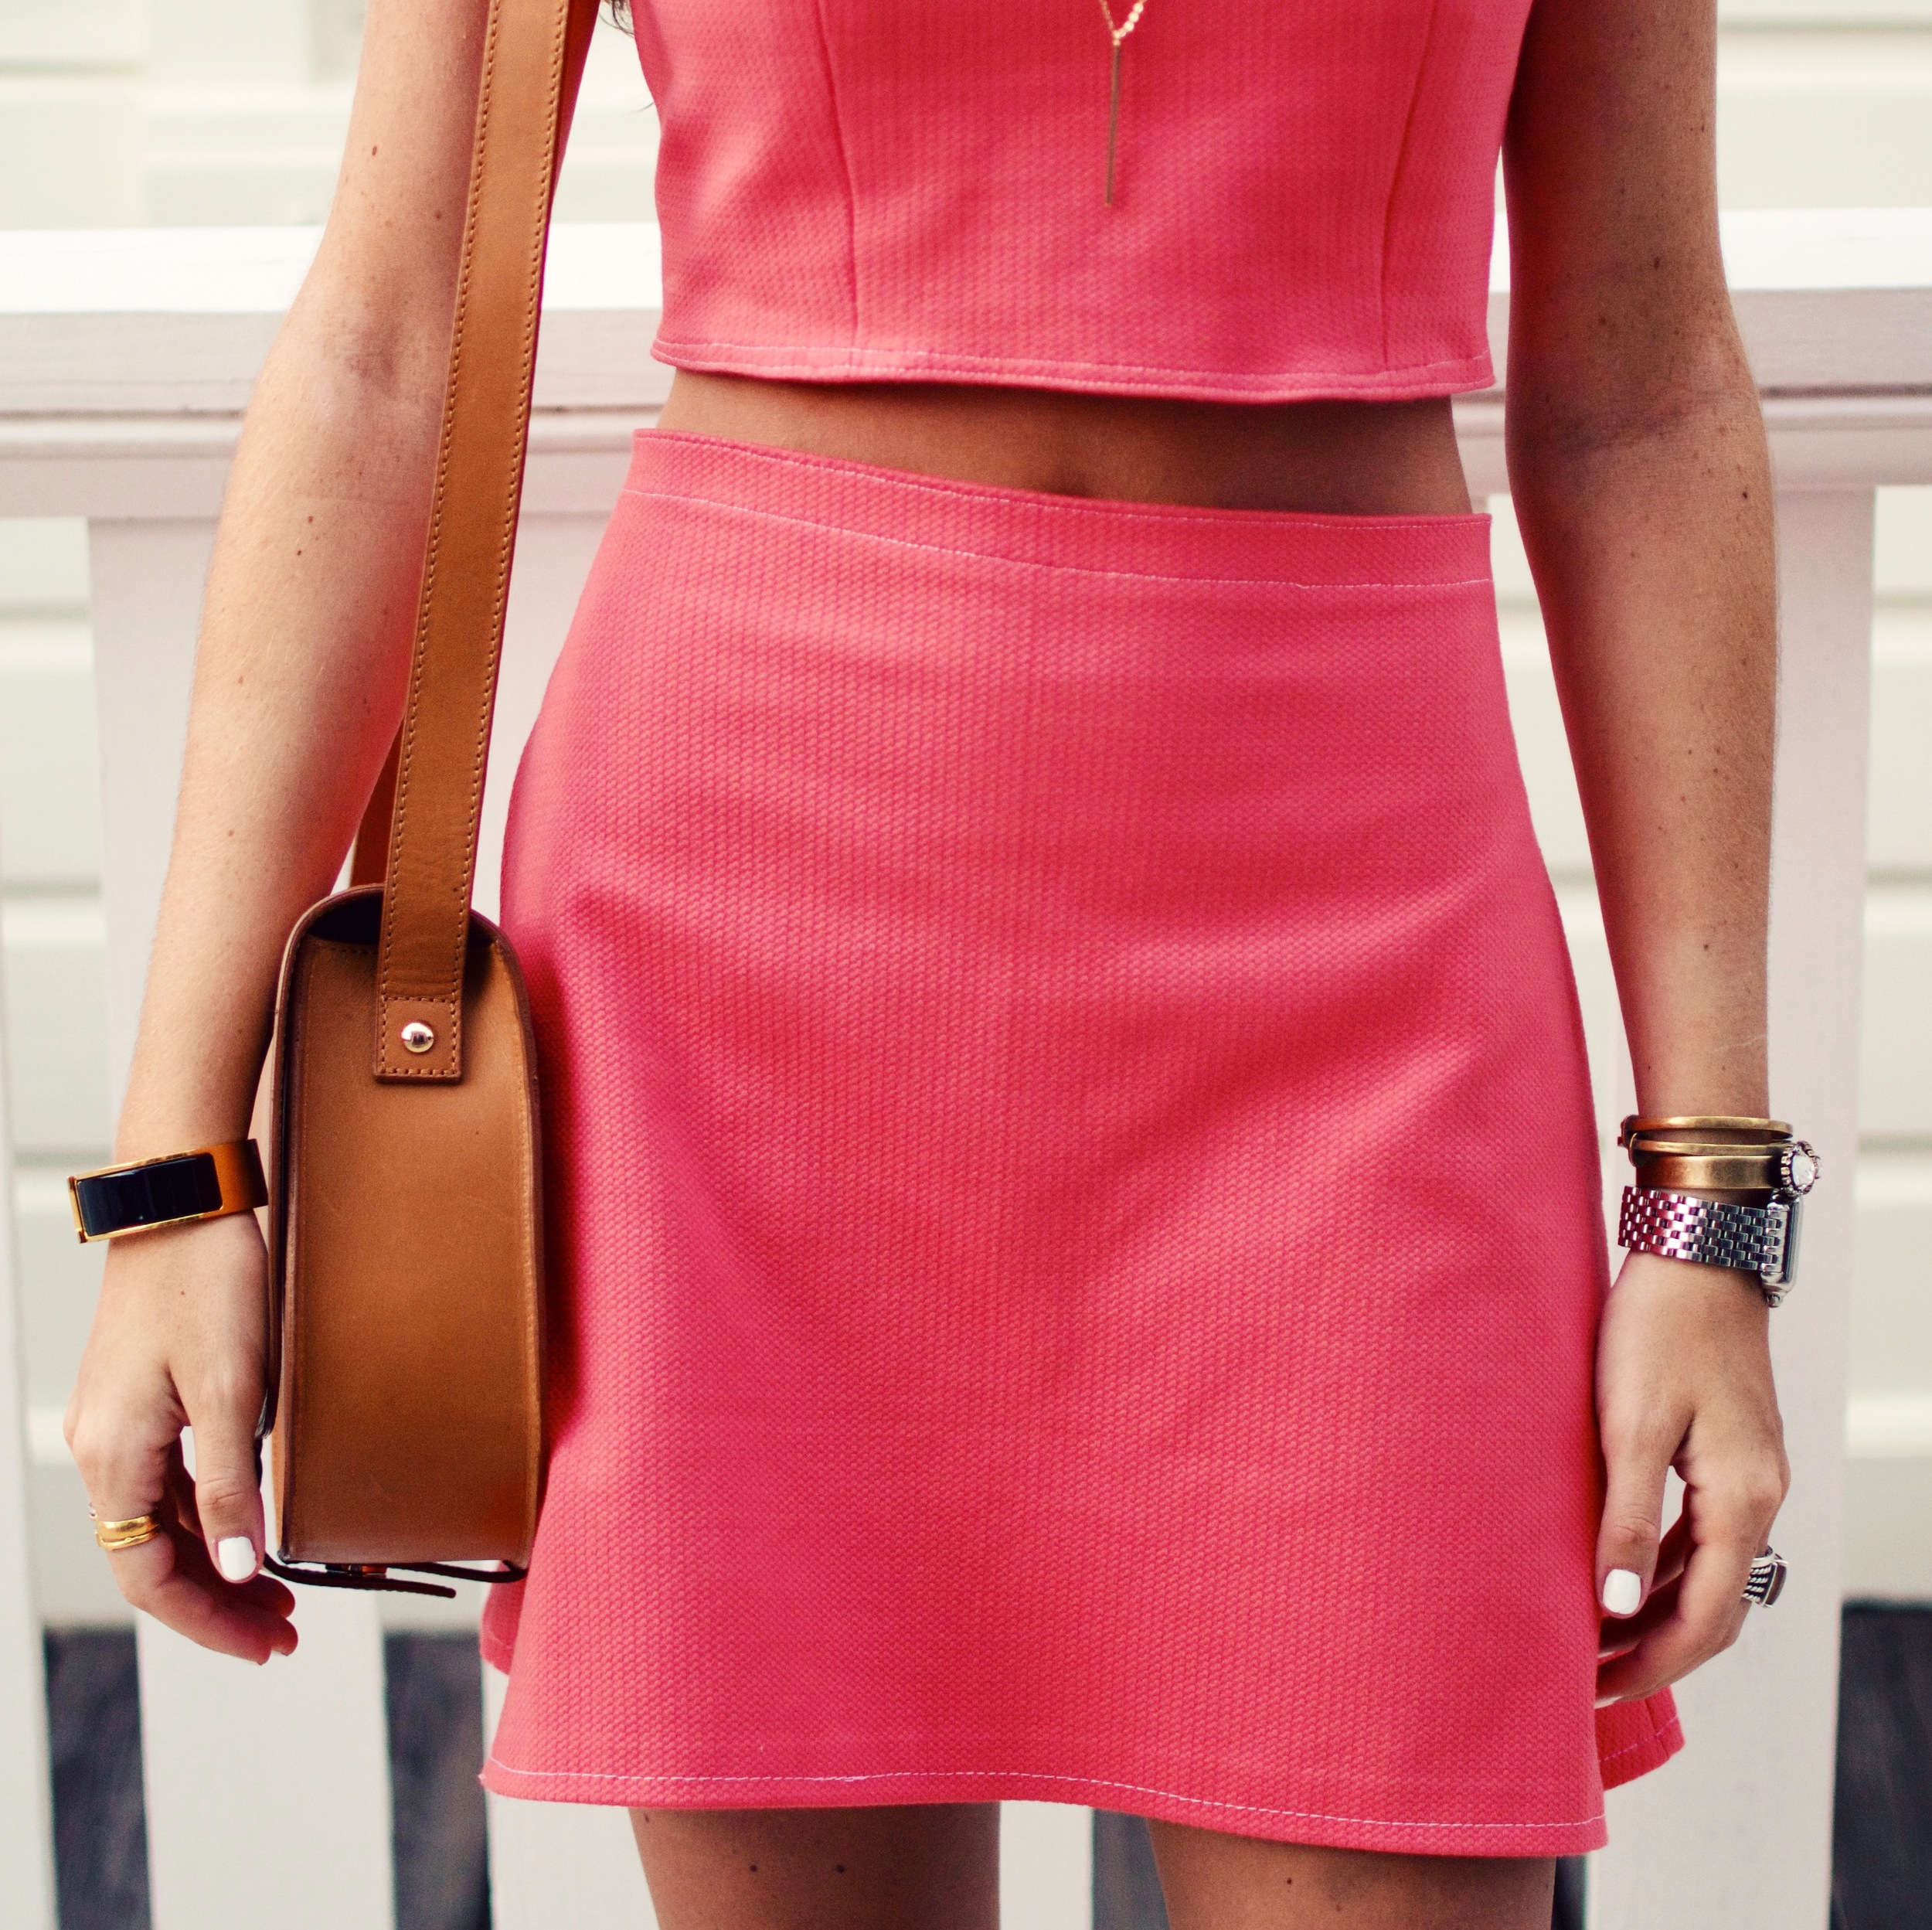 designs by lcb coral two piece3.jpg